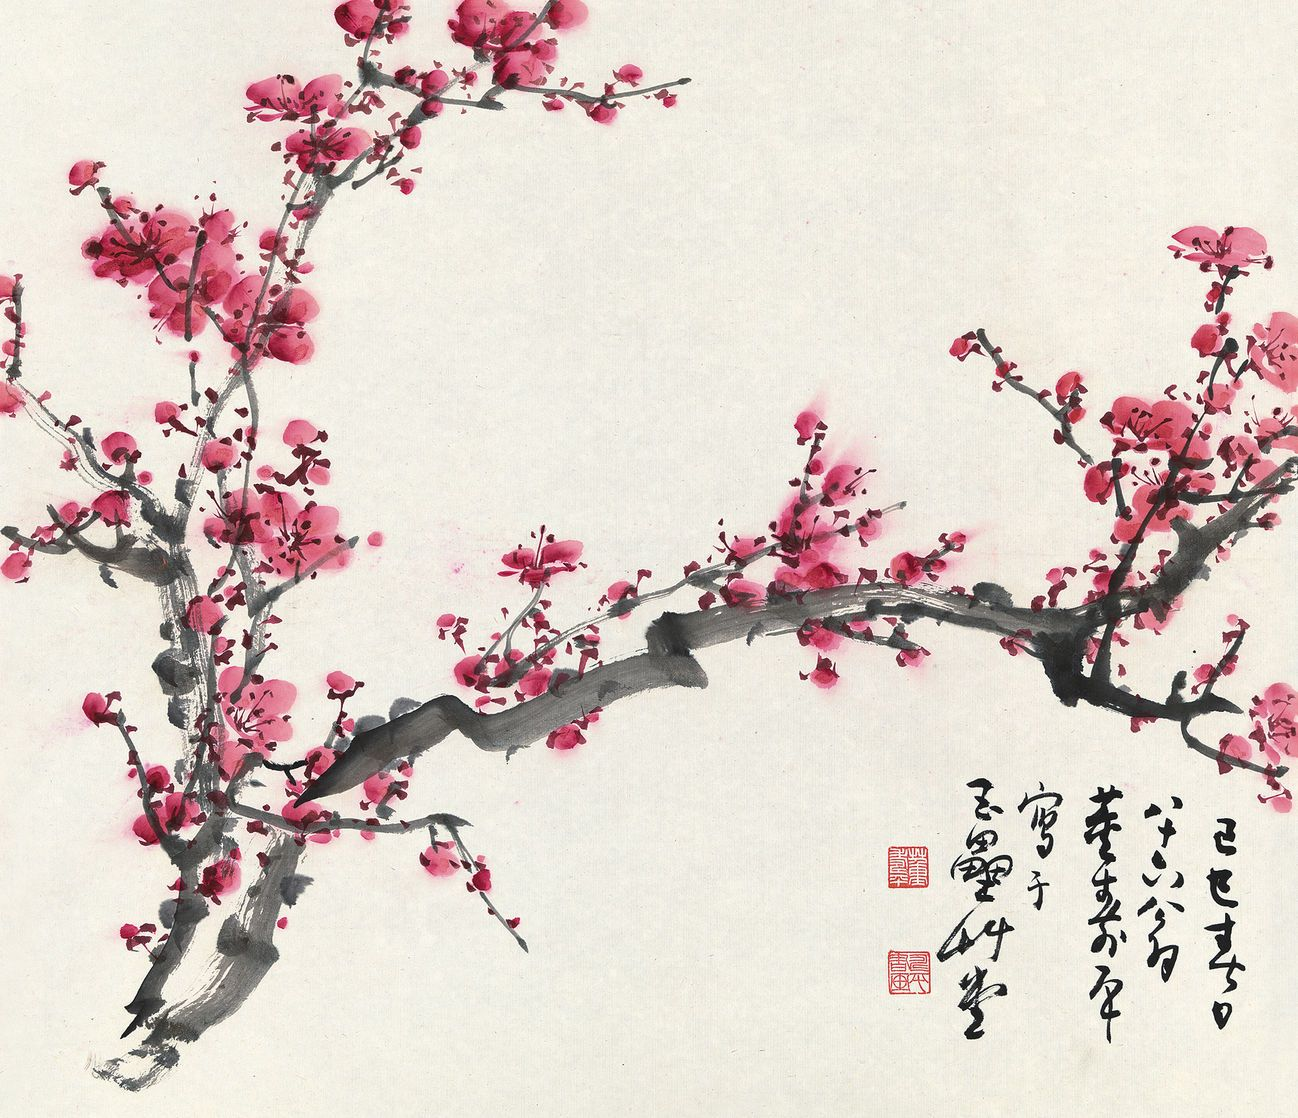 plum blossom artwork SUZHOU GALLERY Pinterest